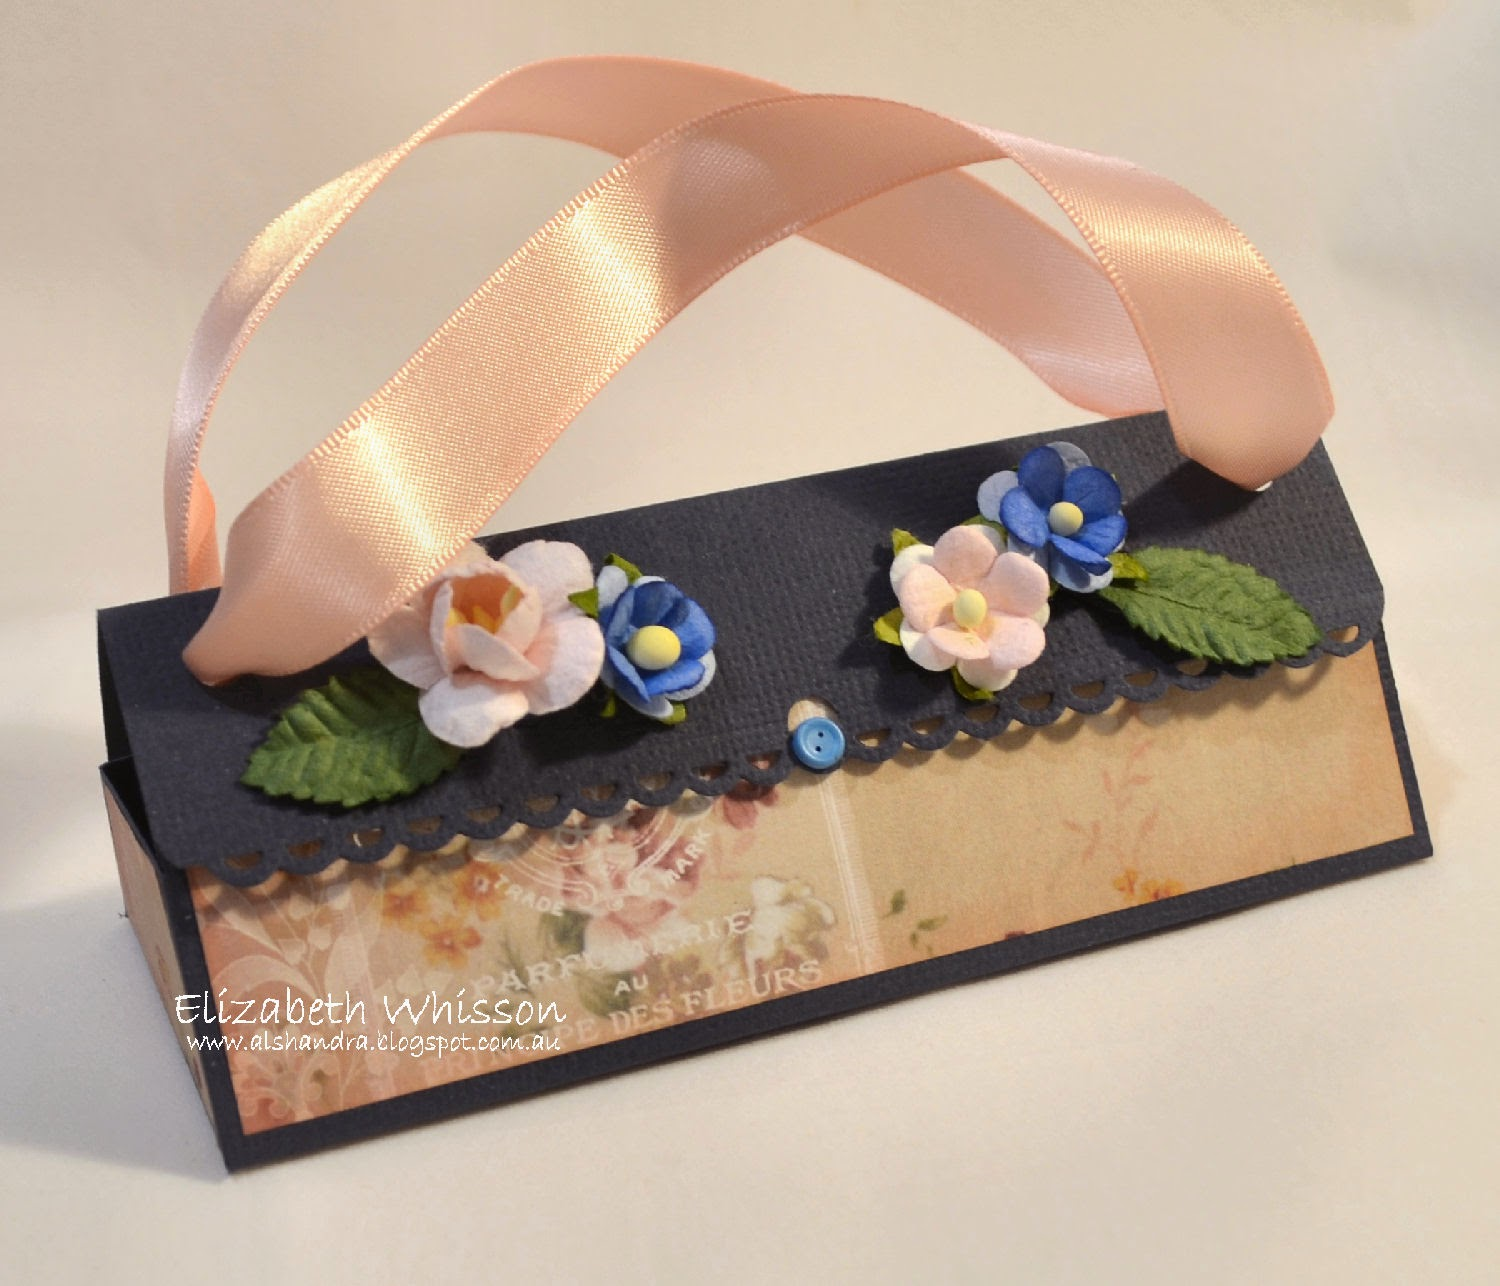 Meg's Garden, The Romantic Garden, gift box, live and love crafts, button brad, spellbinders shapeabilities on the edge, satin ribbon, green tara leaves, scrap dots, gift box, Ferrero Rocher